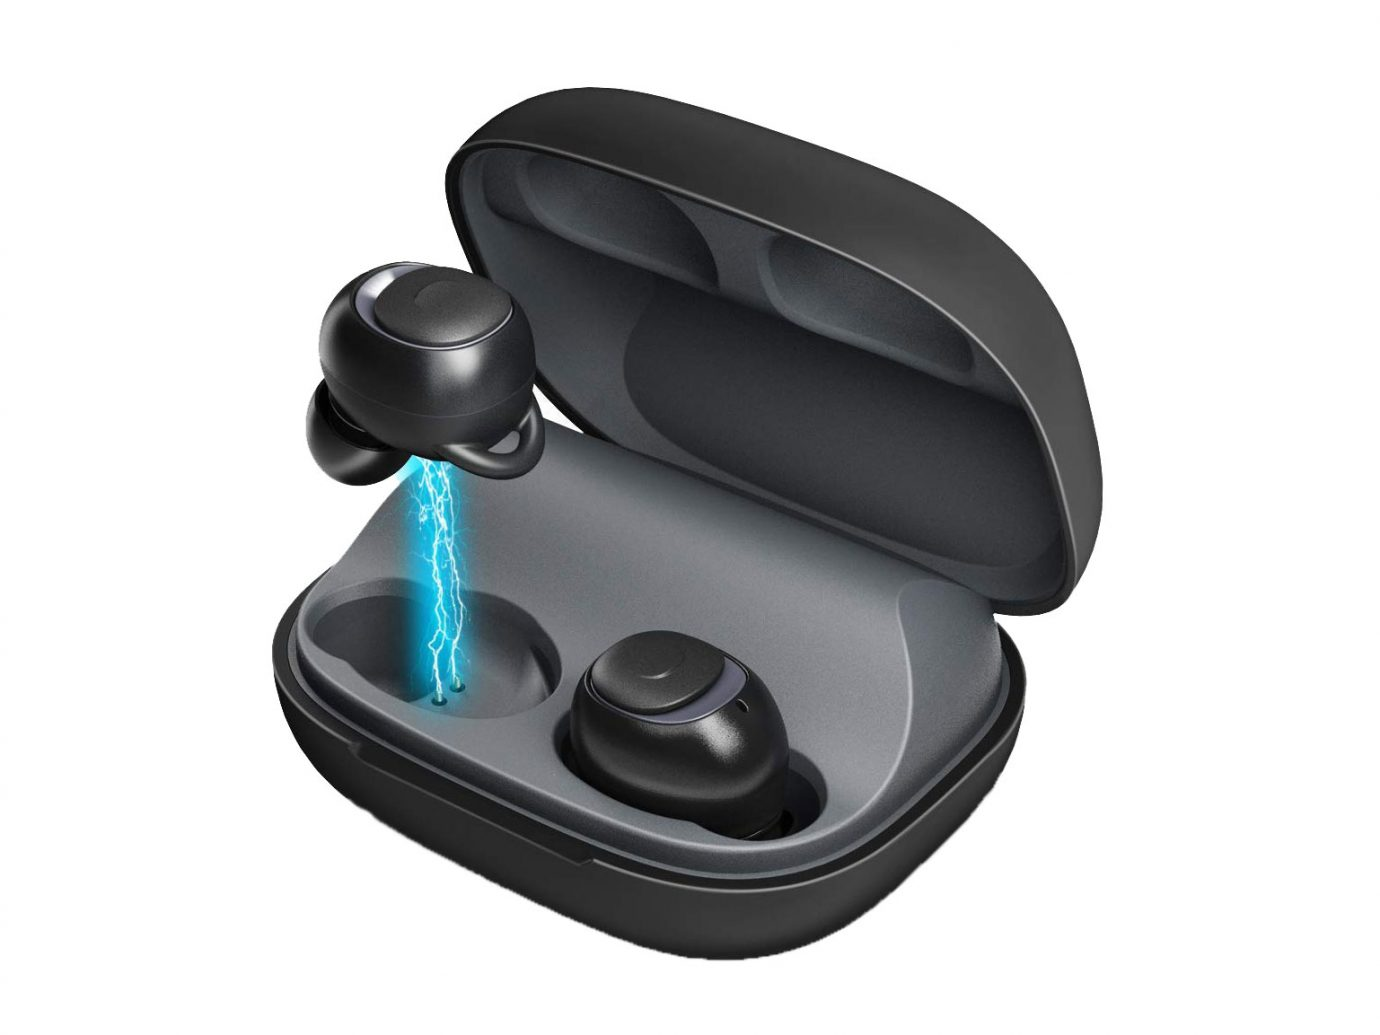 MEBUYZ Bluetooth 5.0 Noise Canceling Wireless Earbuds Headphones